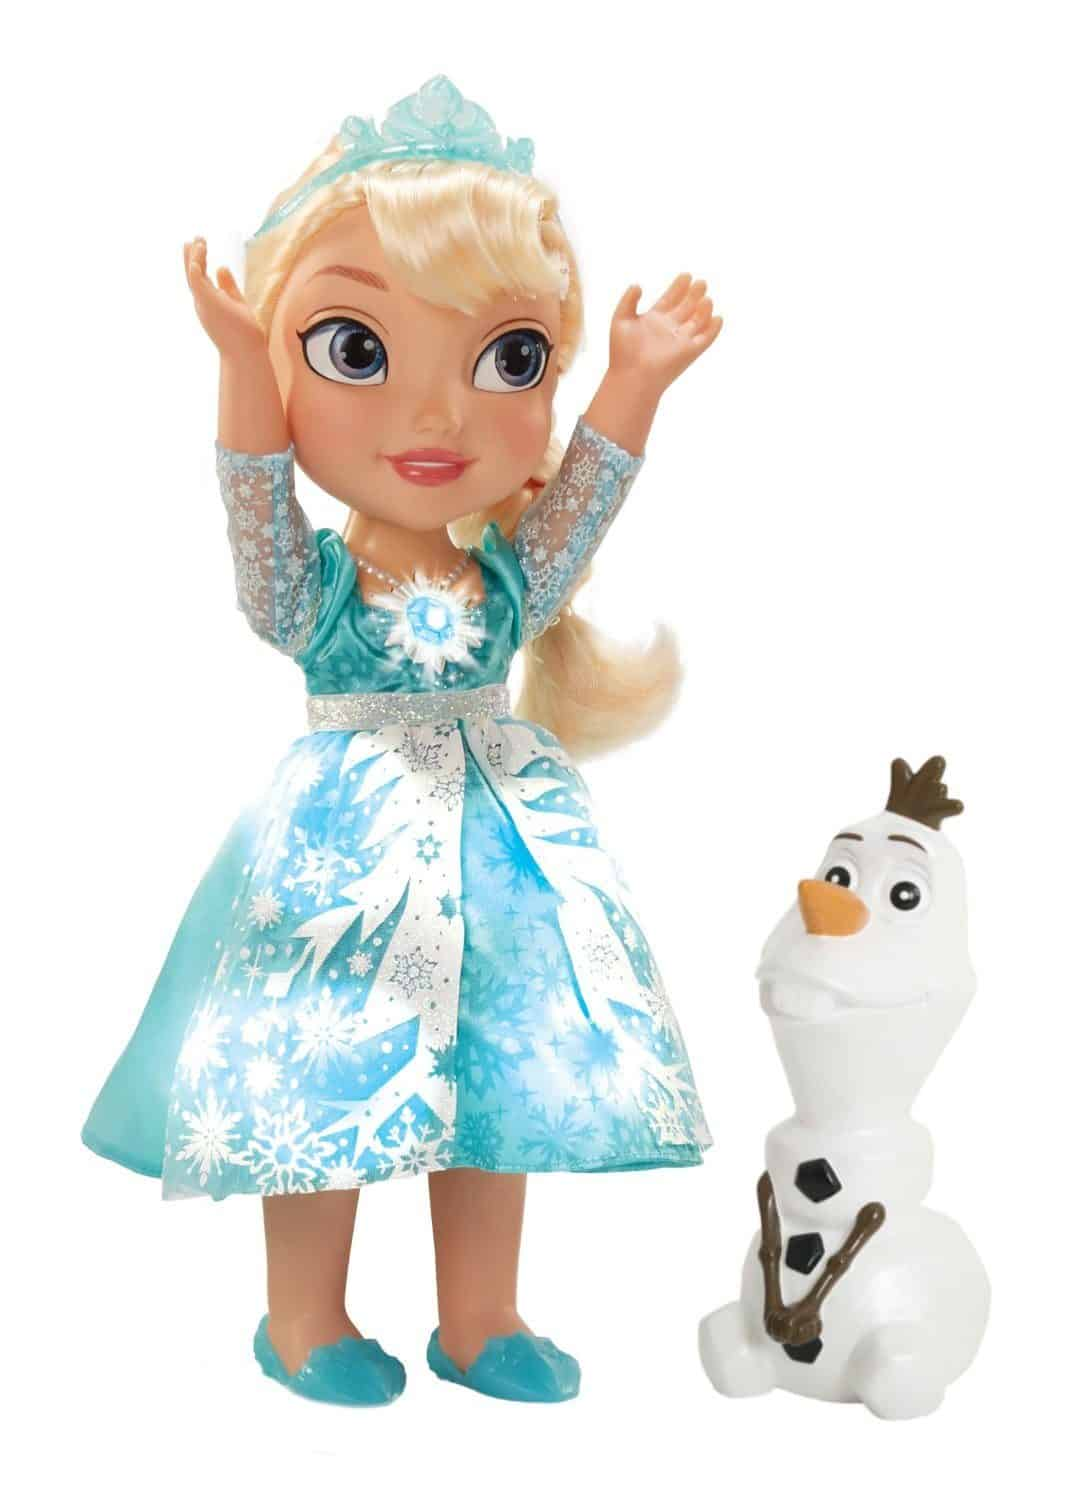 Snow Glow Elsa Singing Doll: Definitely an Alpha Mom favorite and a Holiday Hot Toy Hit